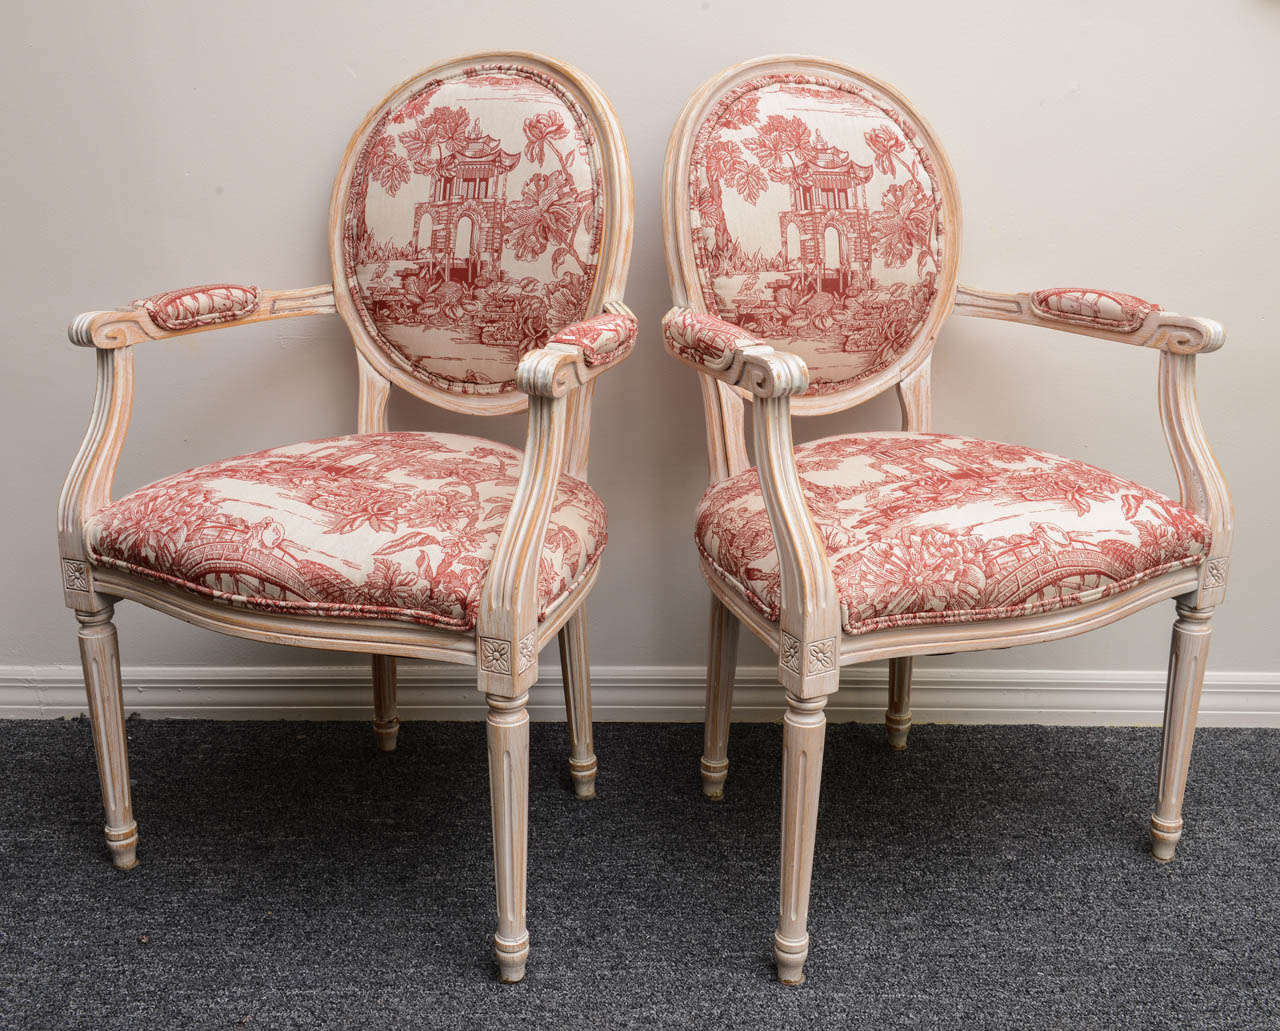 Pair French Louis XVI Style Armchairs Upholstered in a Red Chinoiserie Fabric 3